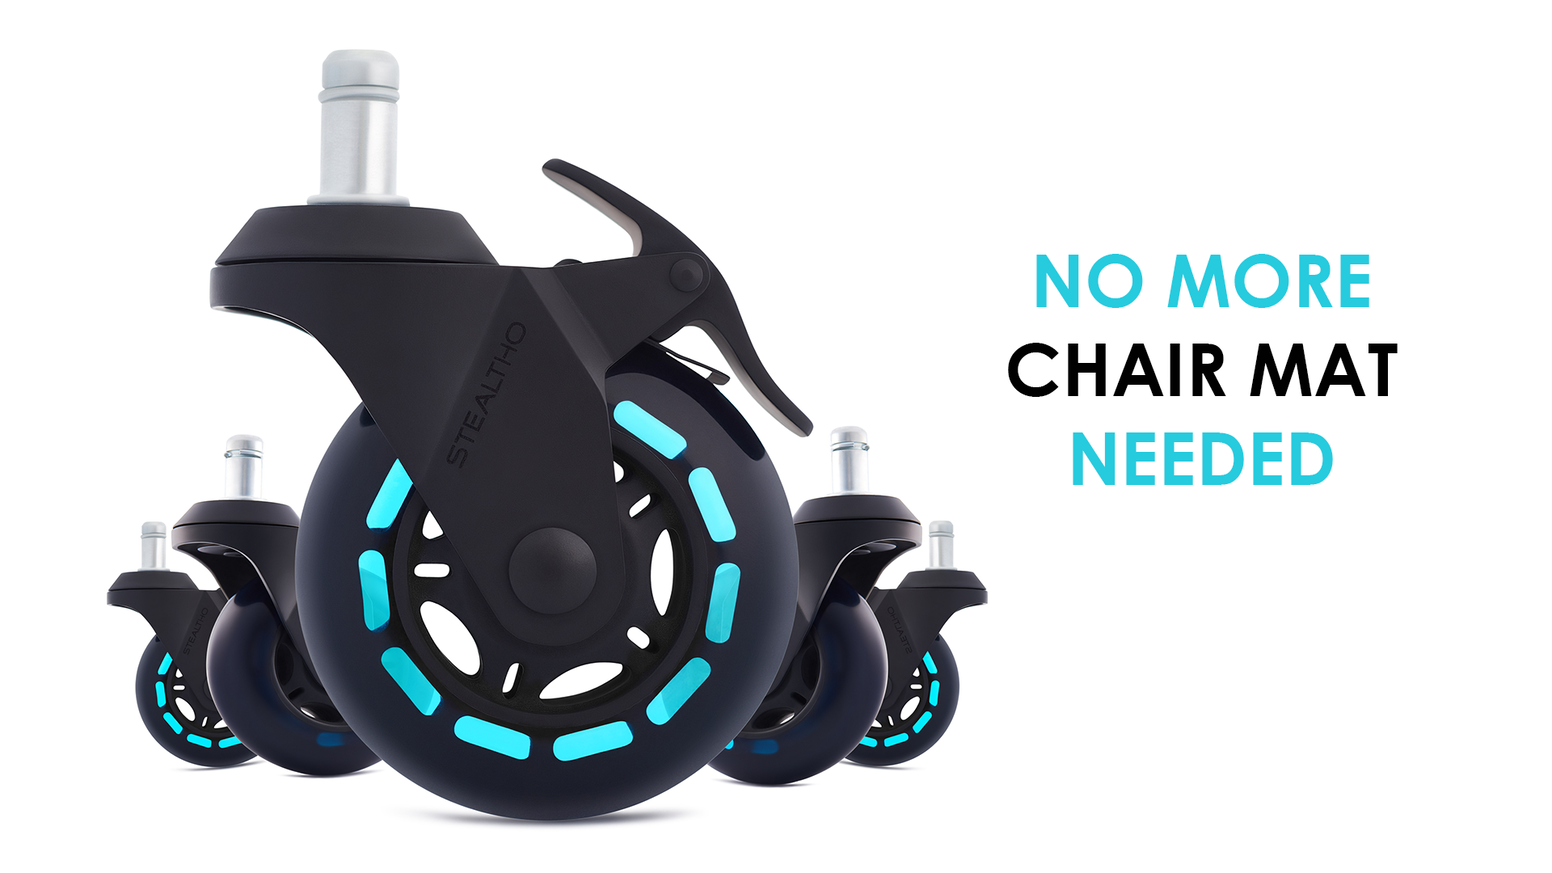 magic office chair caster wheels protect your floor by stealtho